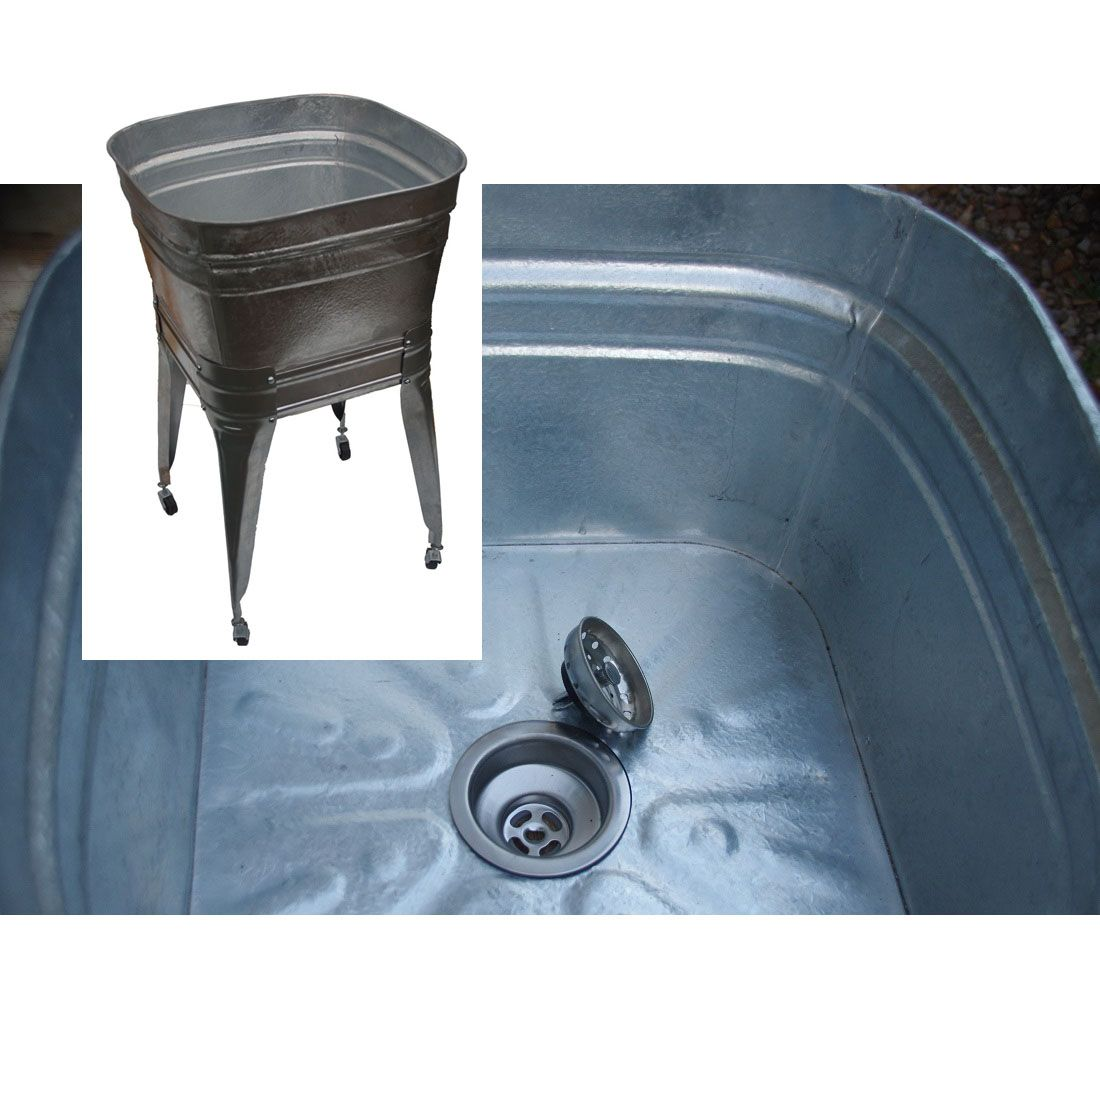 Patio Garden Galvanized Steel Home Garden Beverage Tub